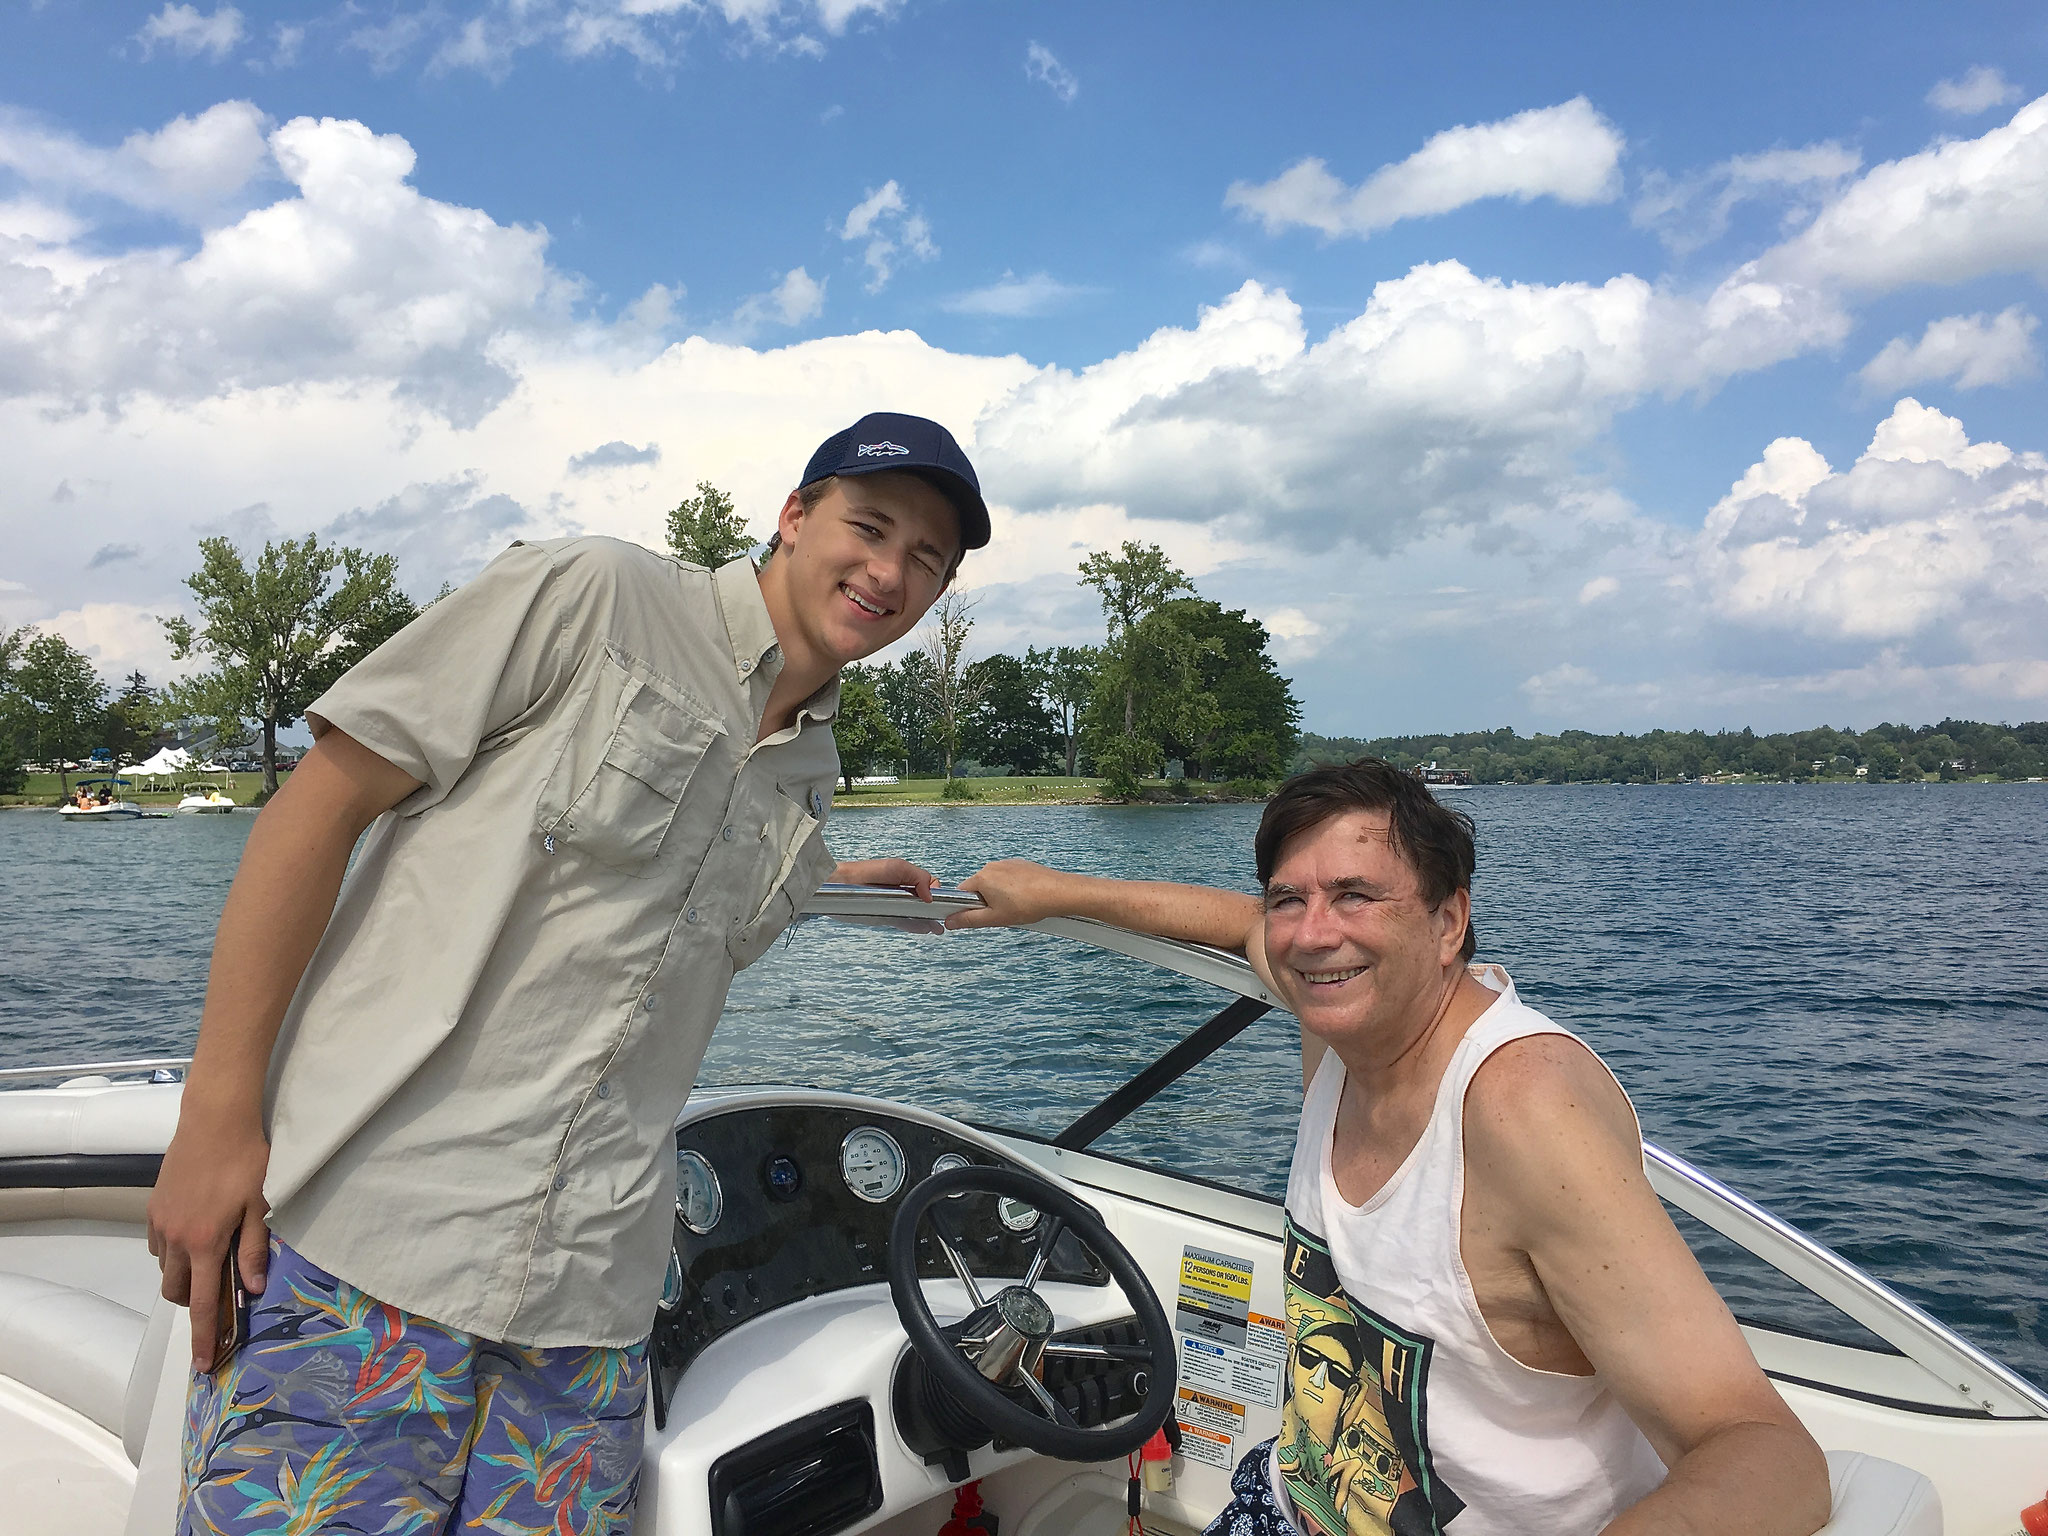 Jack & John at Skaneateles Lake